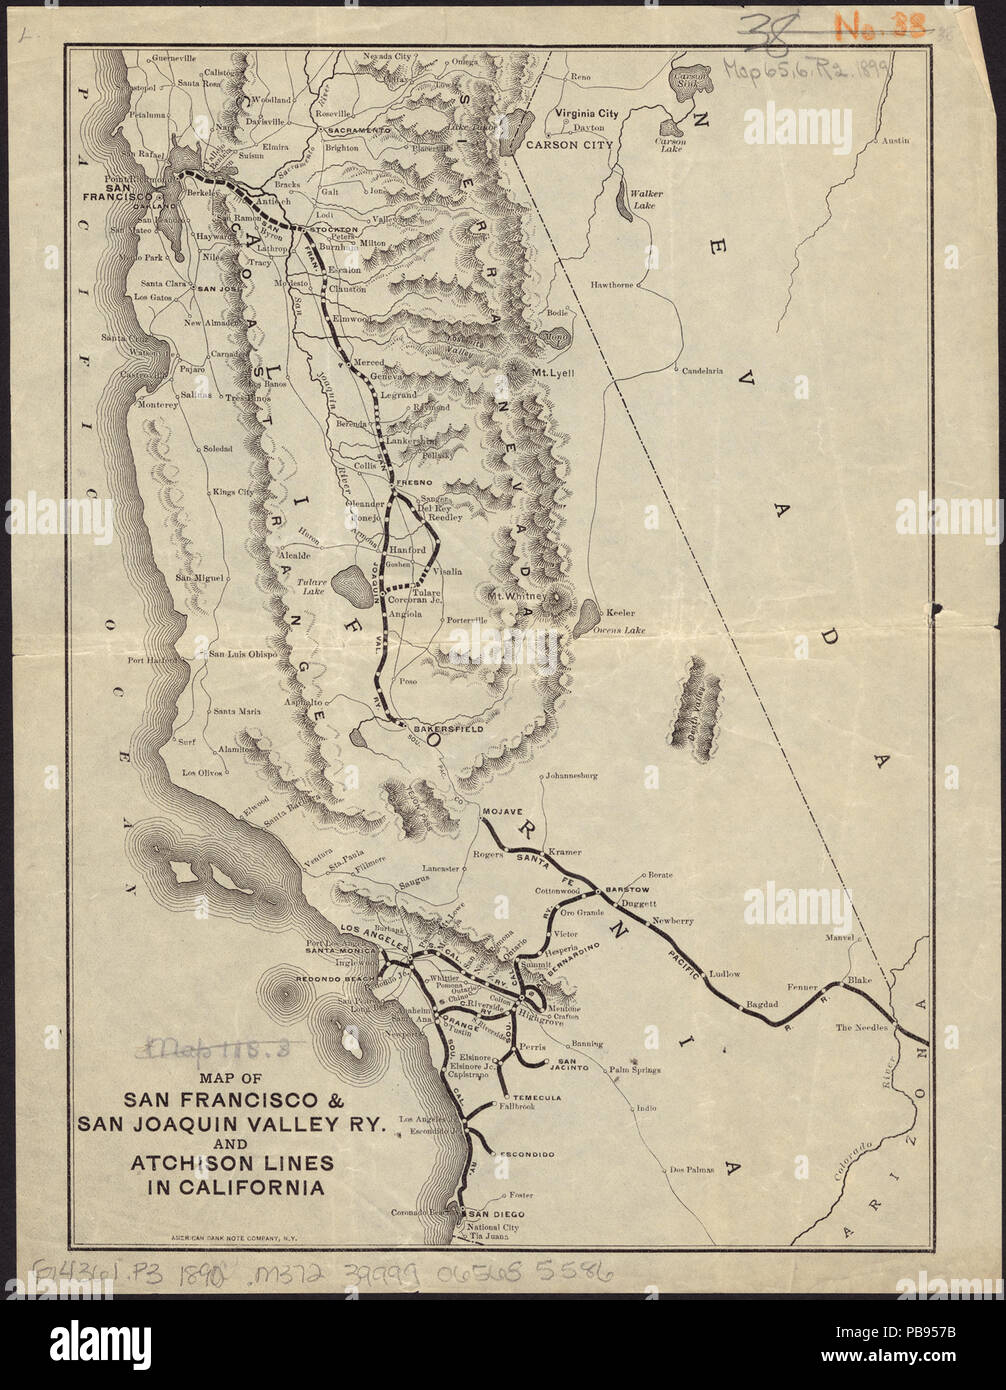 994 Map of San Francisco and San Joaquin Valley Ry. and ... San Joaquin Valley Map on miami valley map, sacramento county, contra costa county, santa clarita valley map, solano county, sonoma valley map, orange county, great african rift valley map, monterey county, san mateo county, stockton map, kings county, calaveras county, los angeles map, alameda county, sacramento map, salton sea map, imperial valley map, san bernardino county, east african rift valley map, valley state prison map, pomona valley map, california central valley, central valley map, wyoming map, stanislaus county, death valley map, santa clara county, placer county, napa valley map, fresno county, sonoma county, bakersfield map, san francisco bay area, greater san diego map, oaxaca valley map, san luis obispo county, mission valley san diego map,